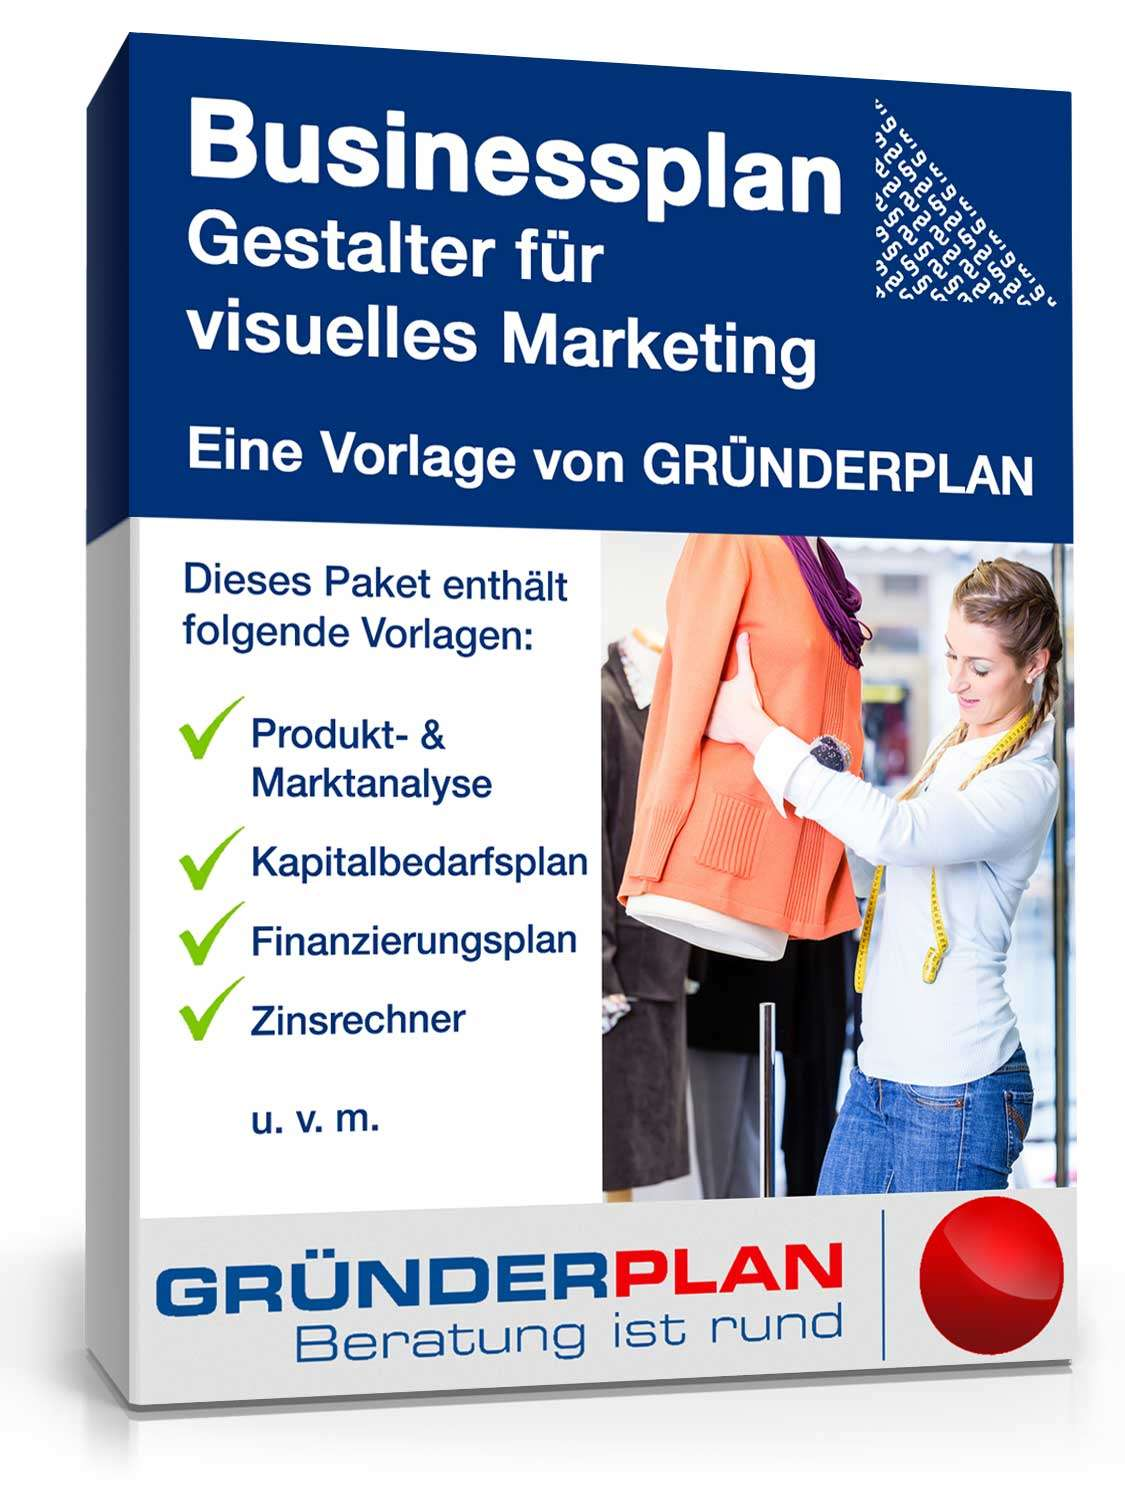 businessplan gestalter f r visuelles marketing von gr nderplan muster zum download. Black Bedroom Furniture Sets. Home Design Ideas